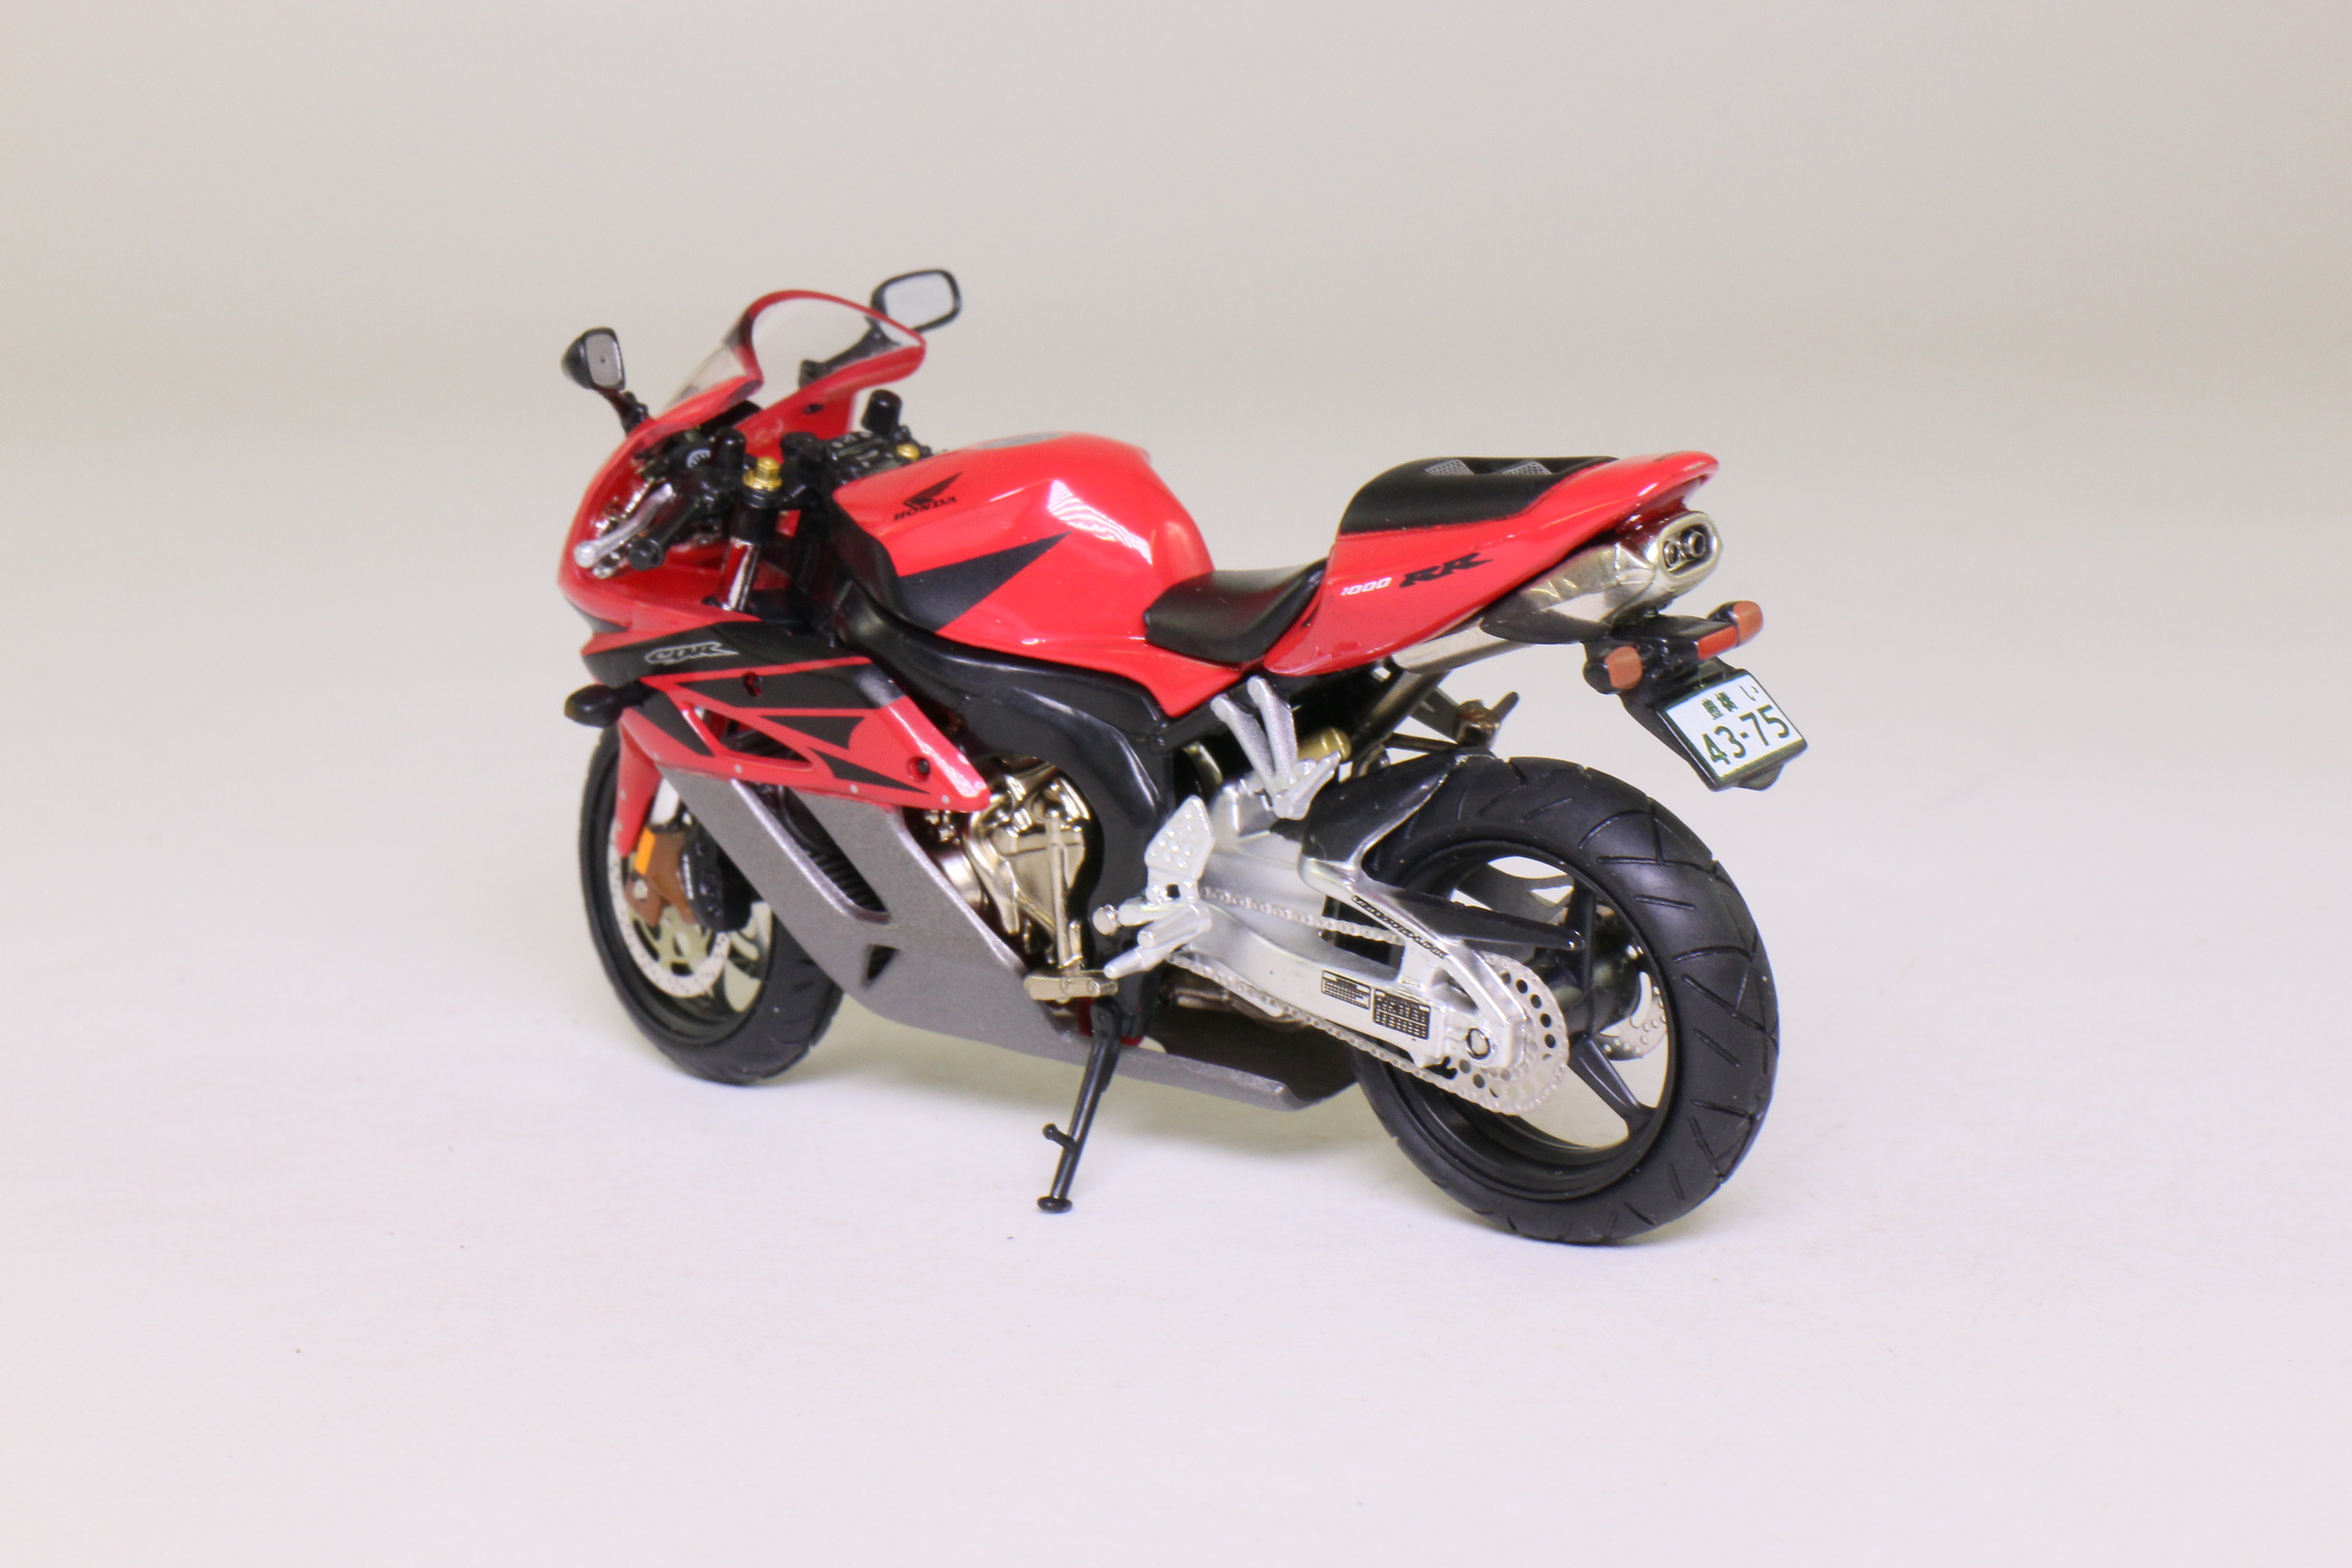 atlas editions honda fireblade cbr1000rr motorcycle red grey sealed boxed ebay. Black Bedroom Furniture Sets. Home Design Ideas